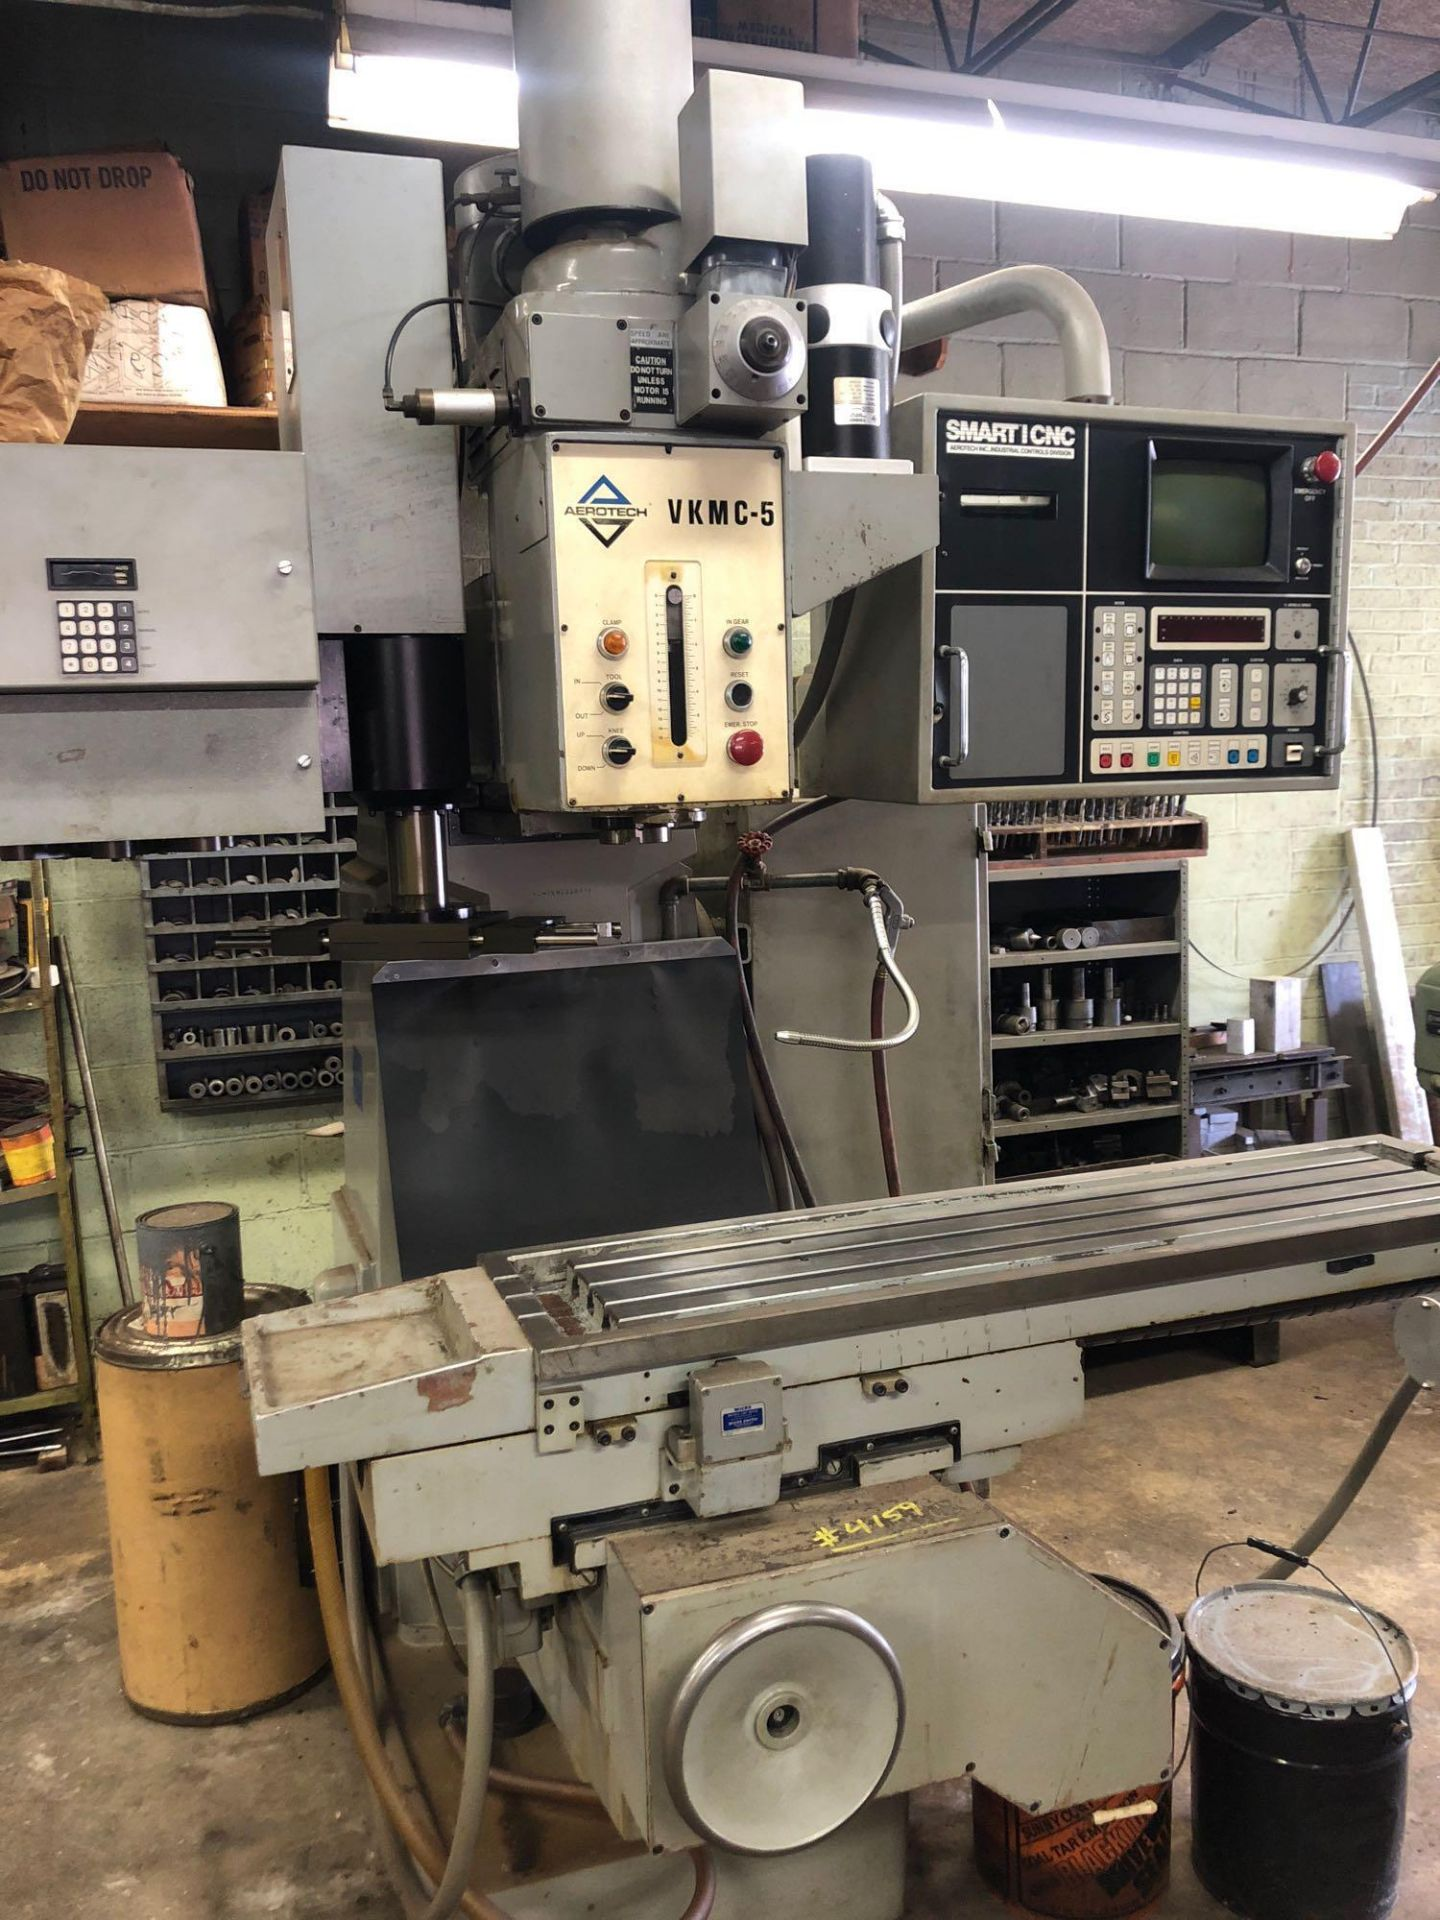 Lot 4159 - Aerotech VKMC-5 CNC Router